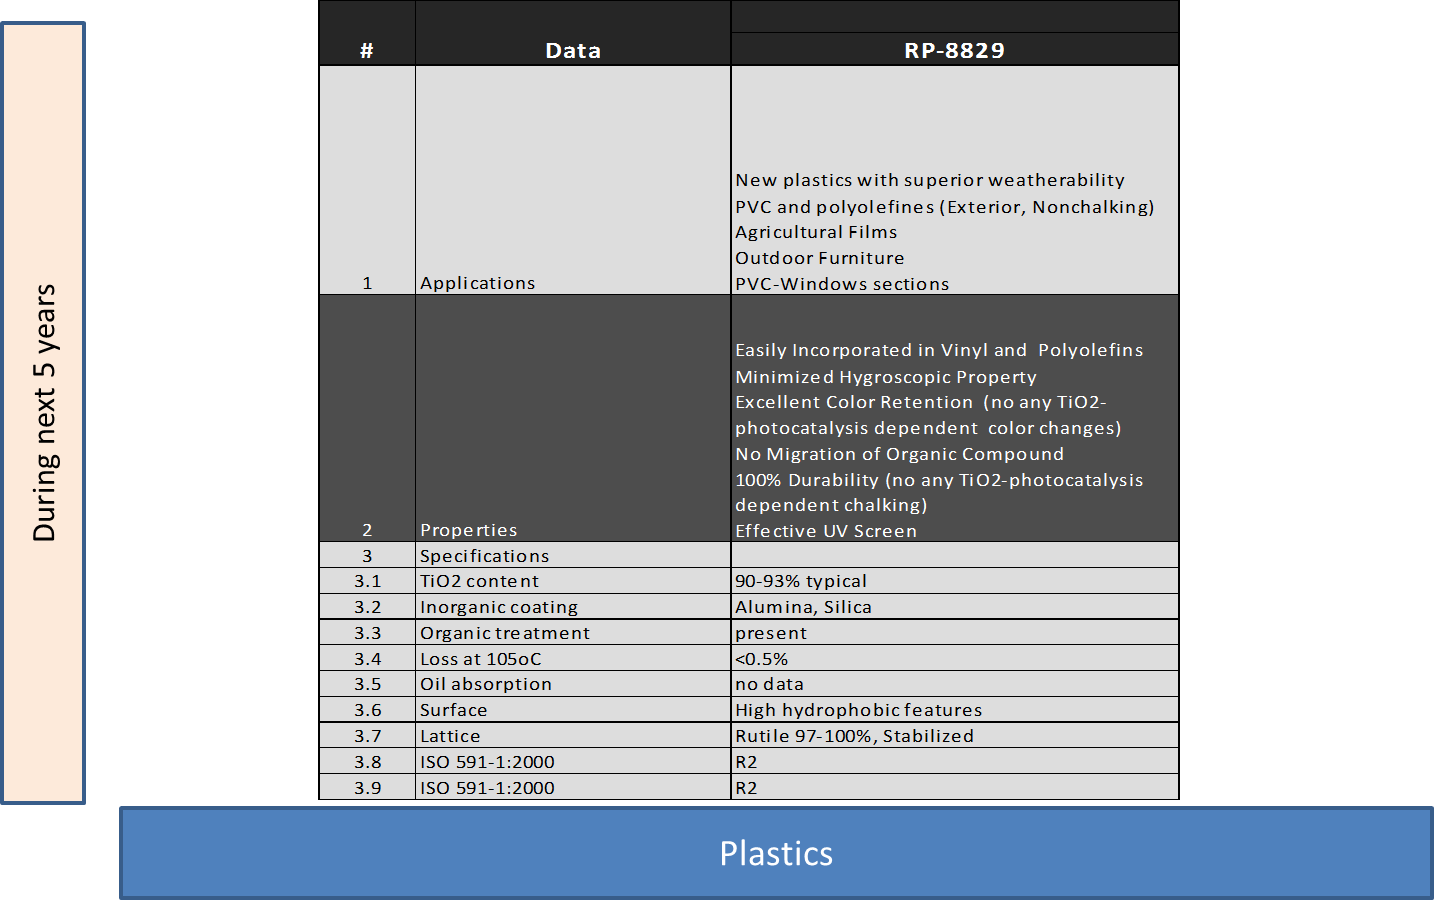 Characteristics of Plastic Grades Technologies and Know-How for RP-8829